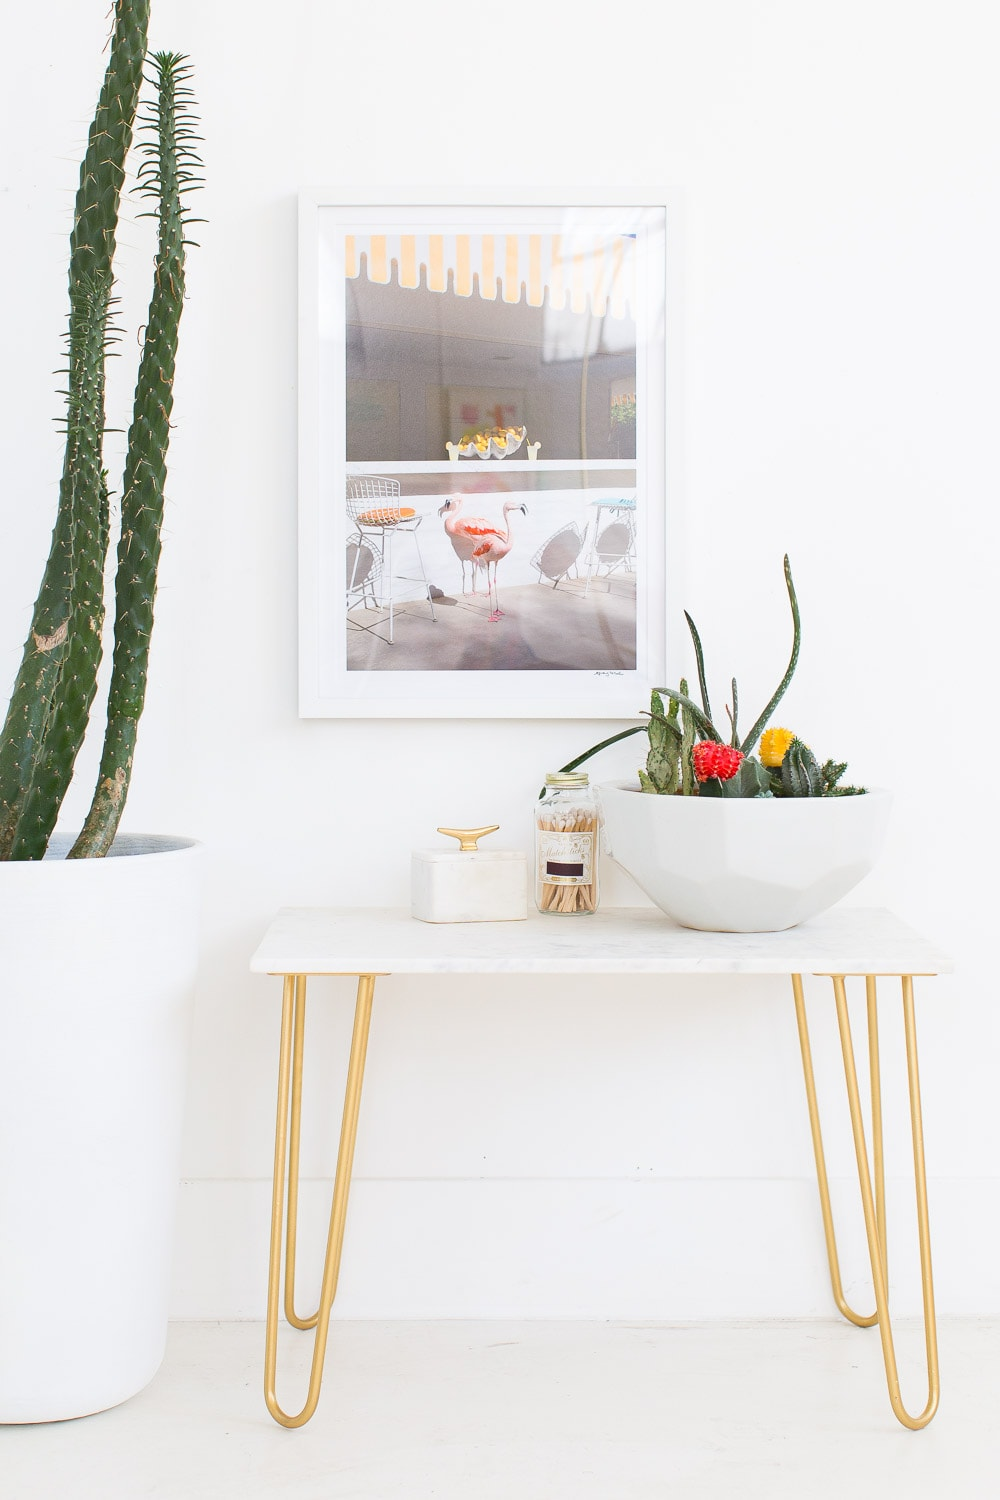 Marble Table Top DIY with Gold Accents- sugar and cloth - home decor ideas by Houston Blogger Ashley Rose #homedecor #decor #gold #diy #doityourself #tabletop #marble #sidetable #table